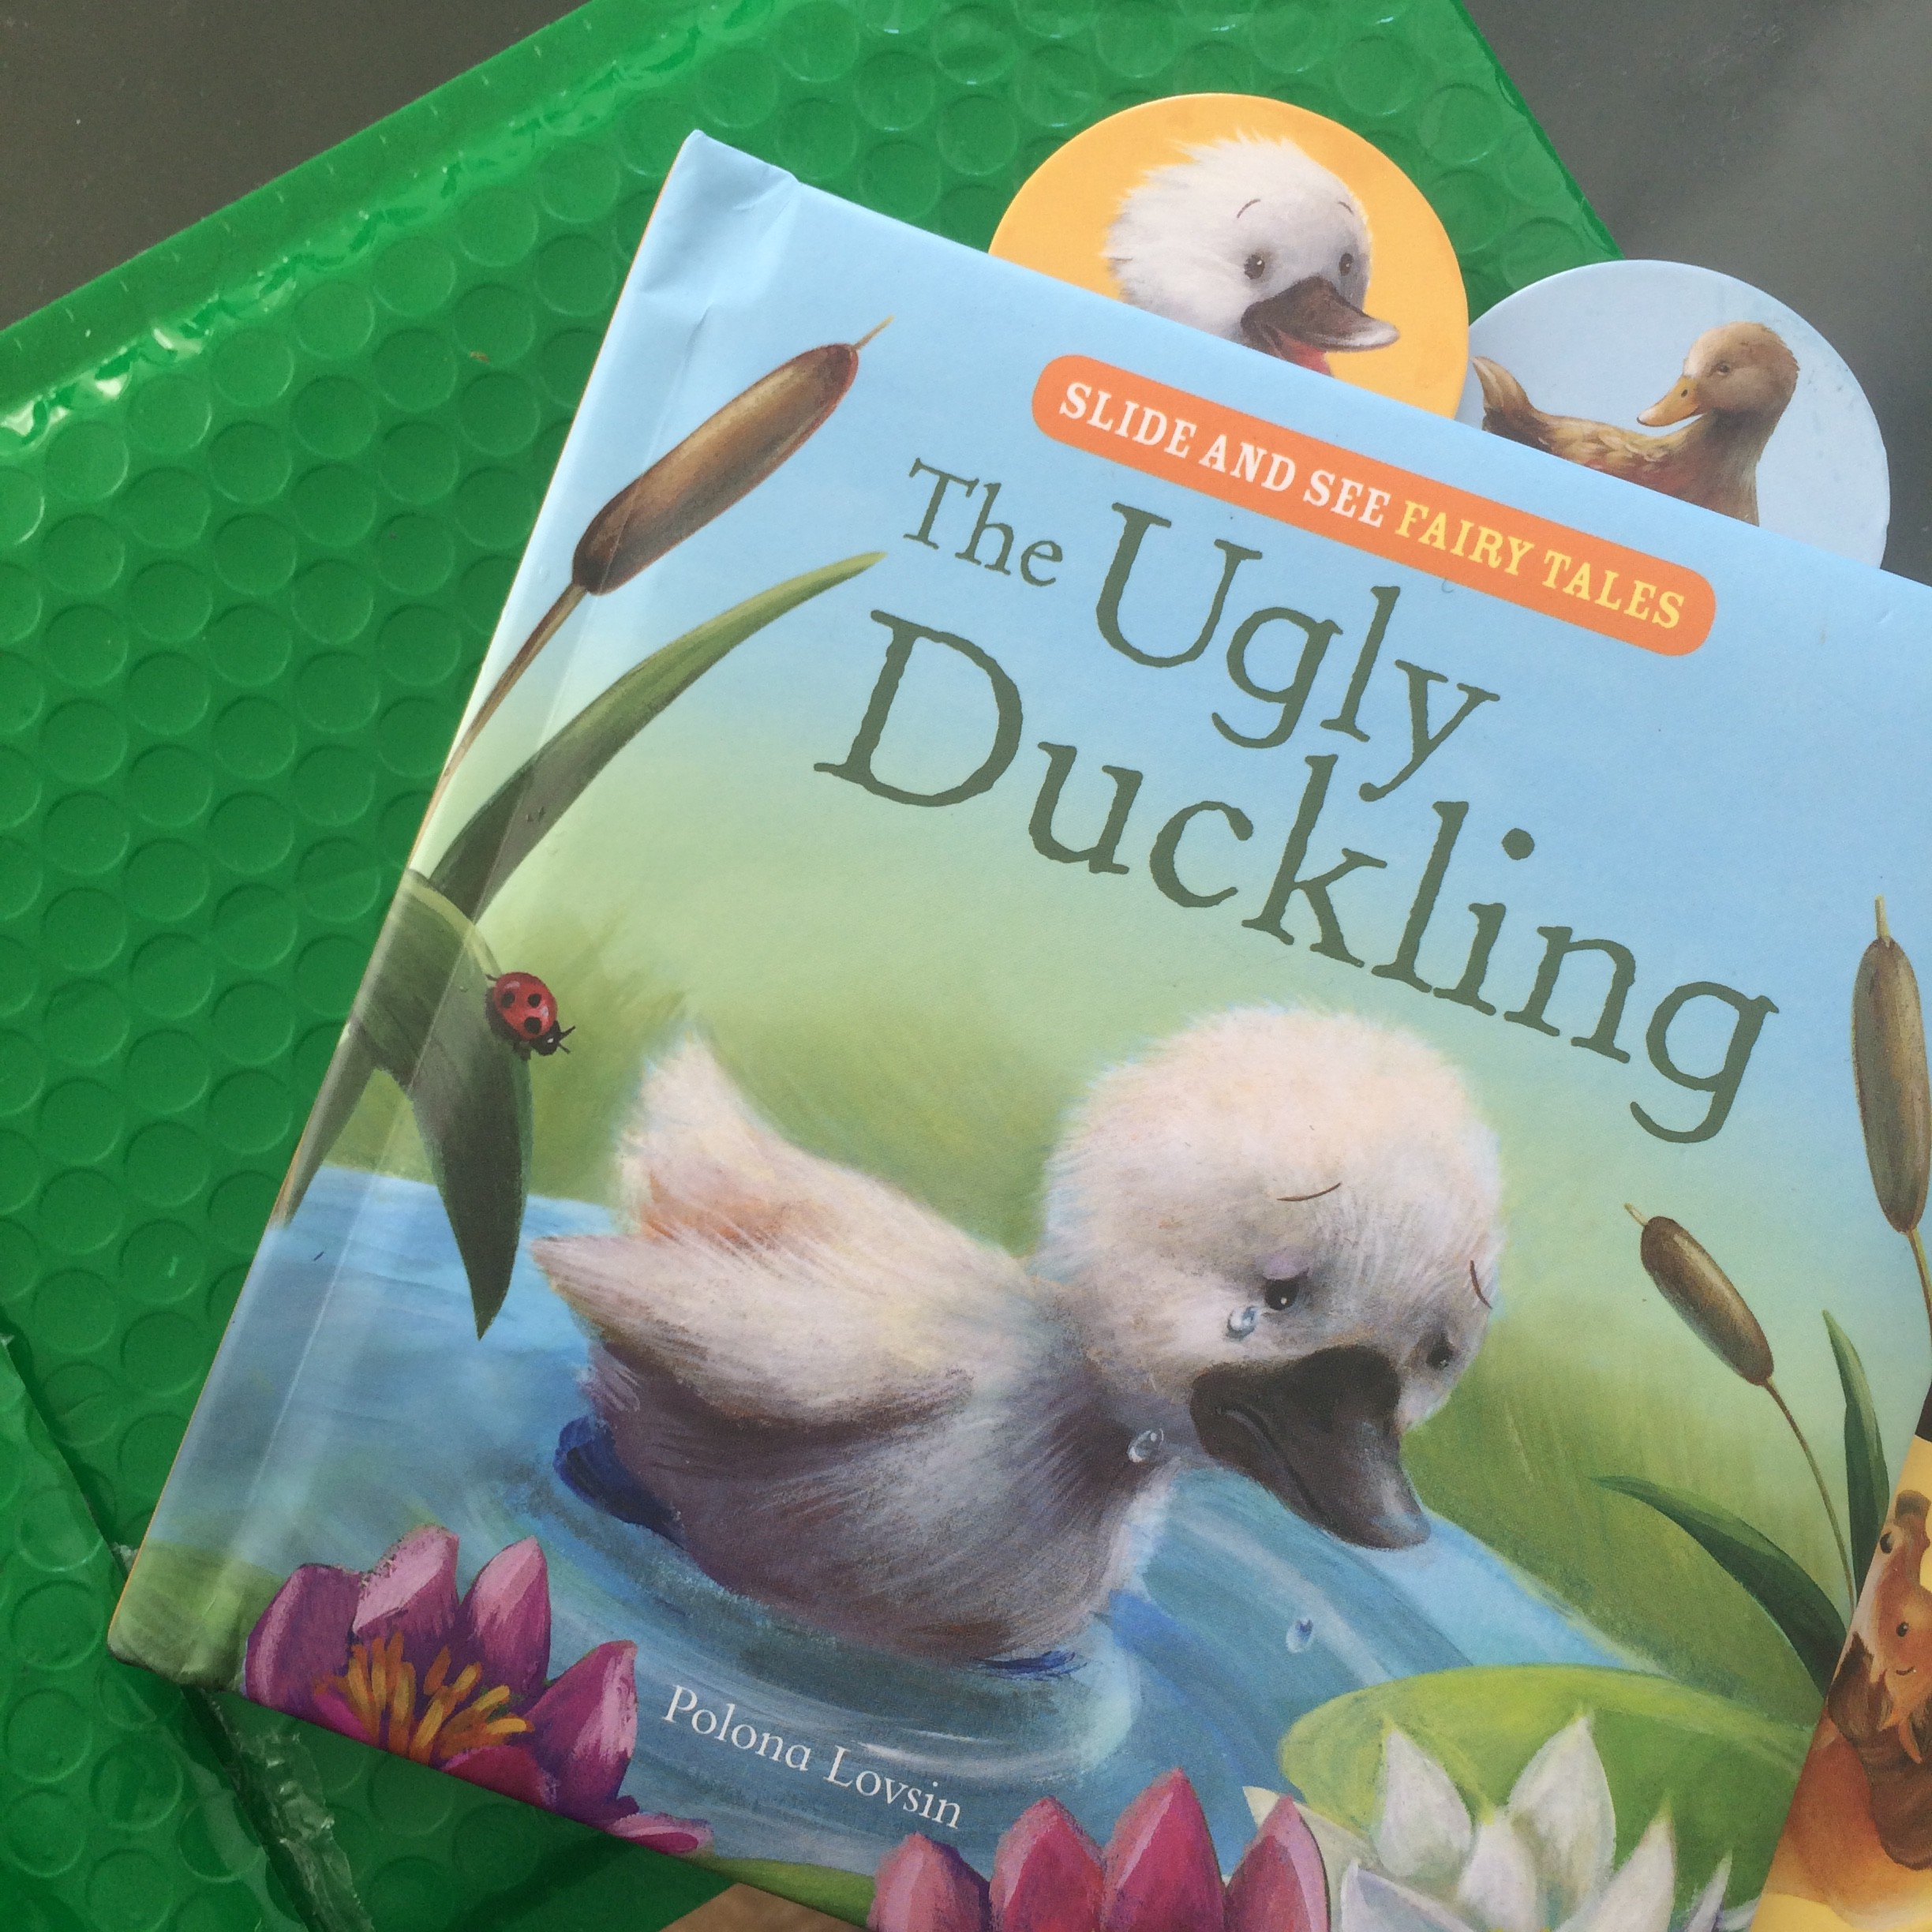 book examine from the particular hideous duckling